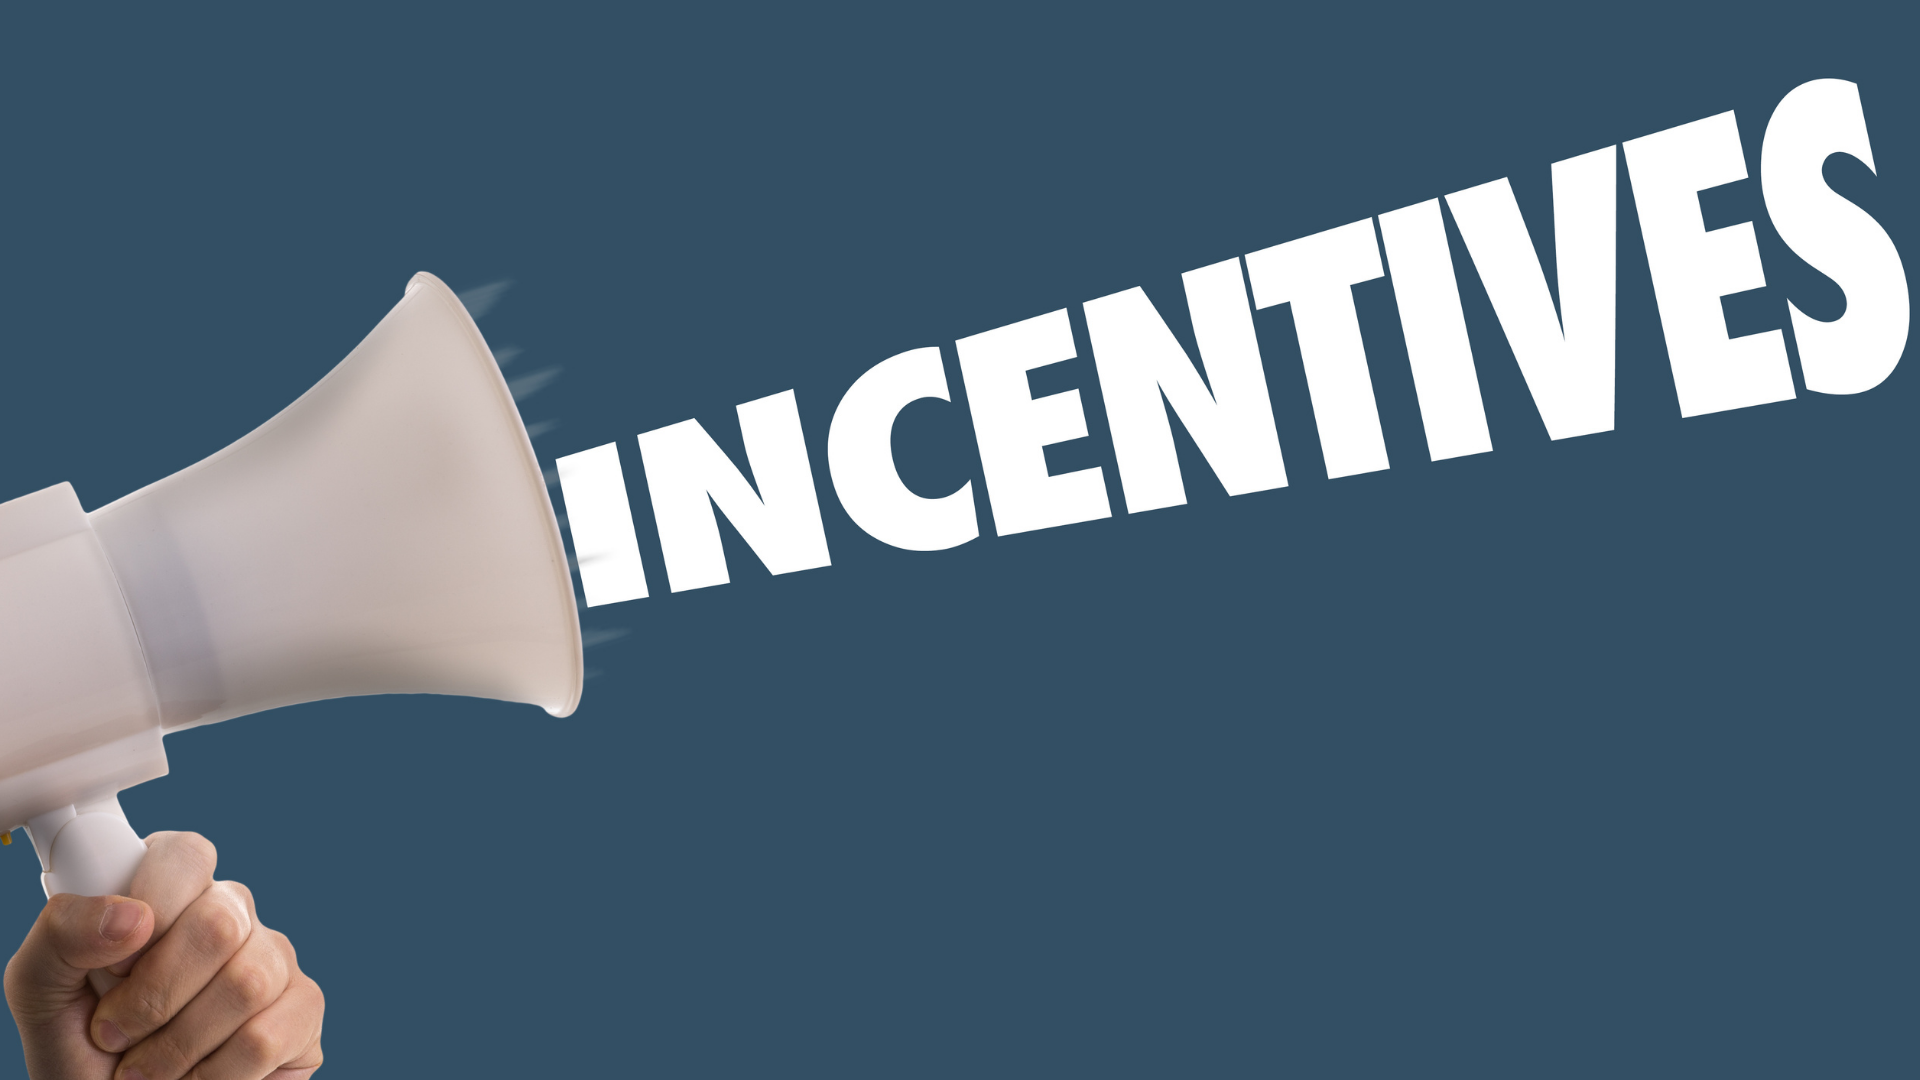 One of the best tips for selling a house is Incentives